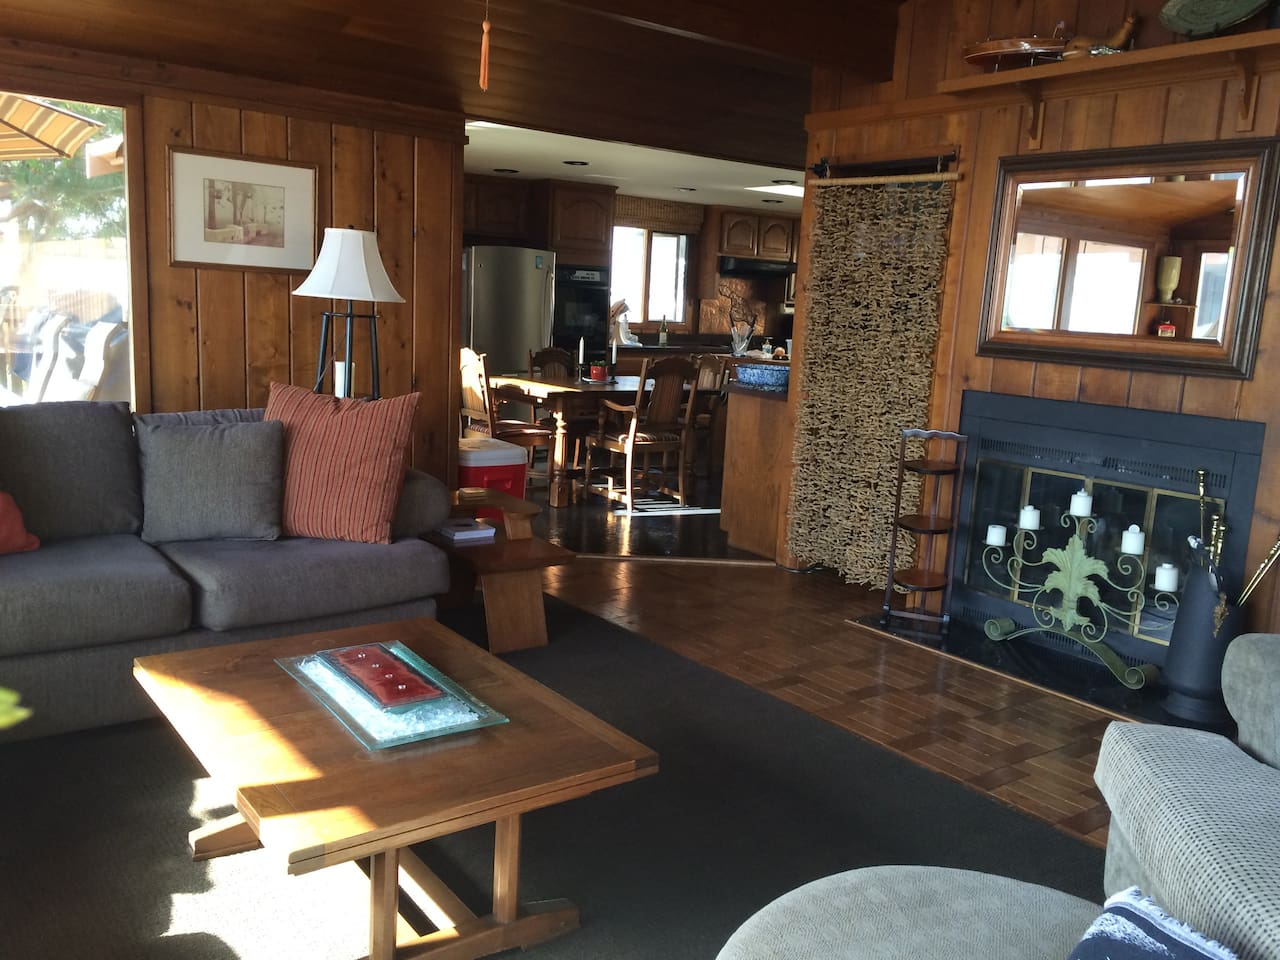 CATALINA ISLAND HOME IN THE HEART OF AVALON - Houses for Rent in ...